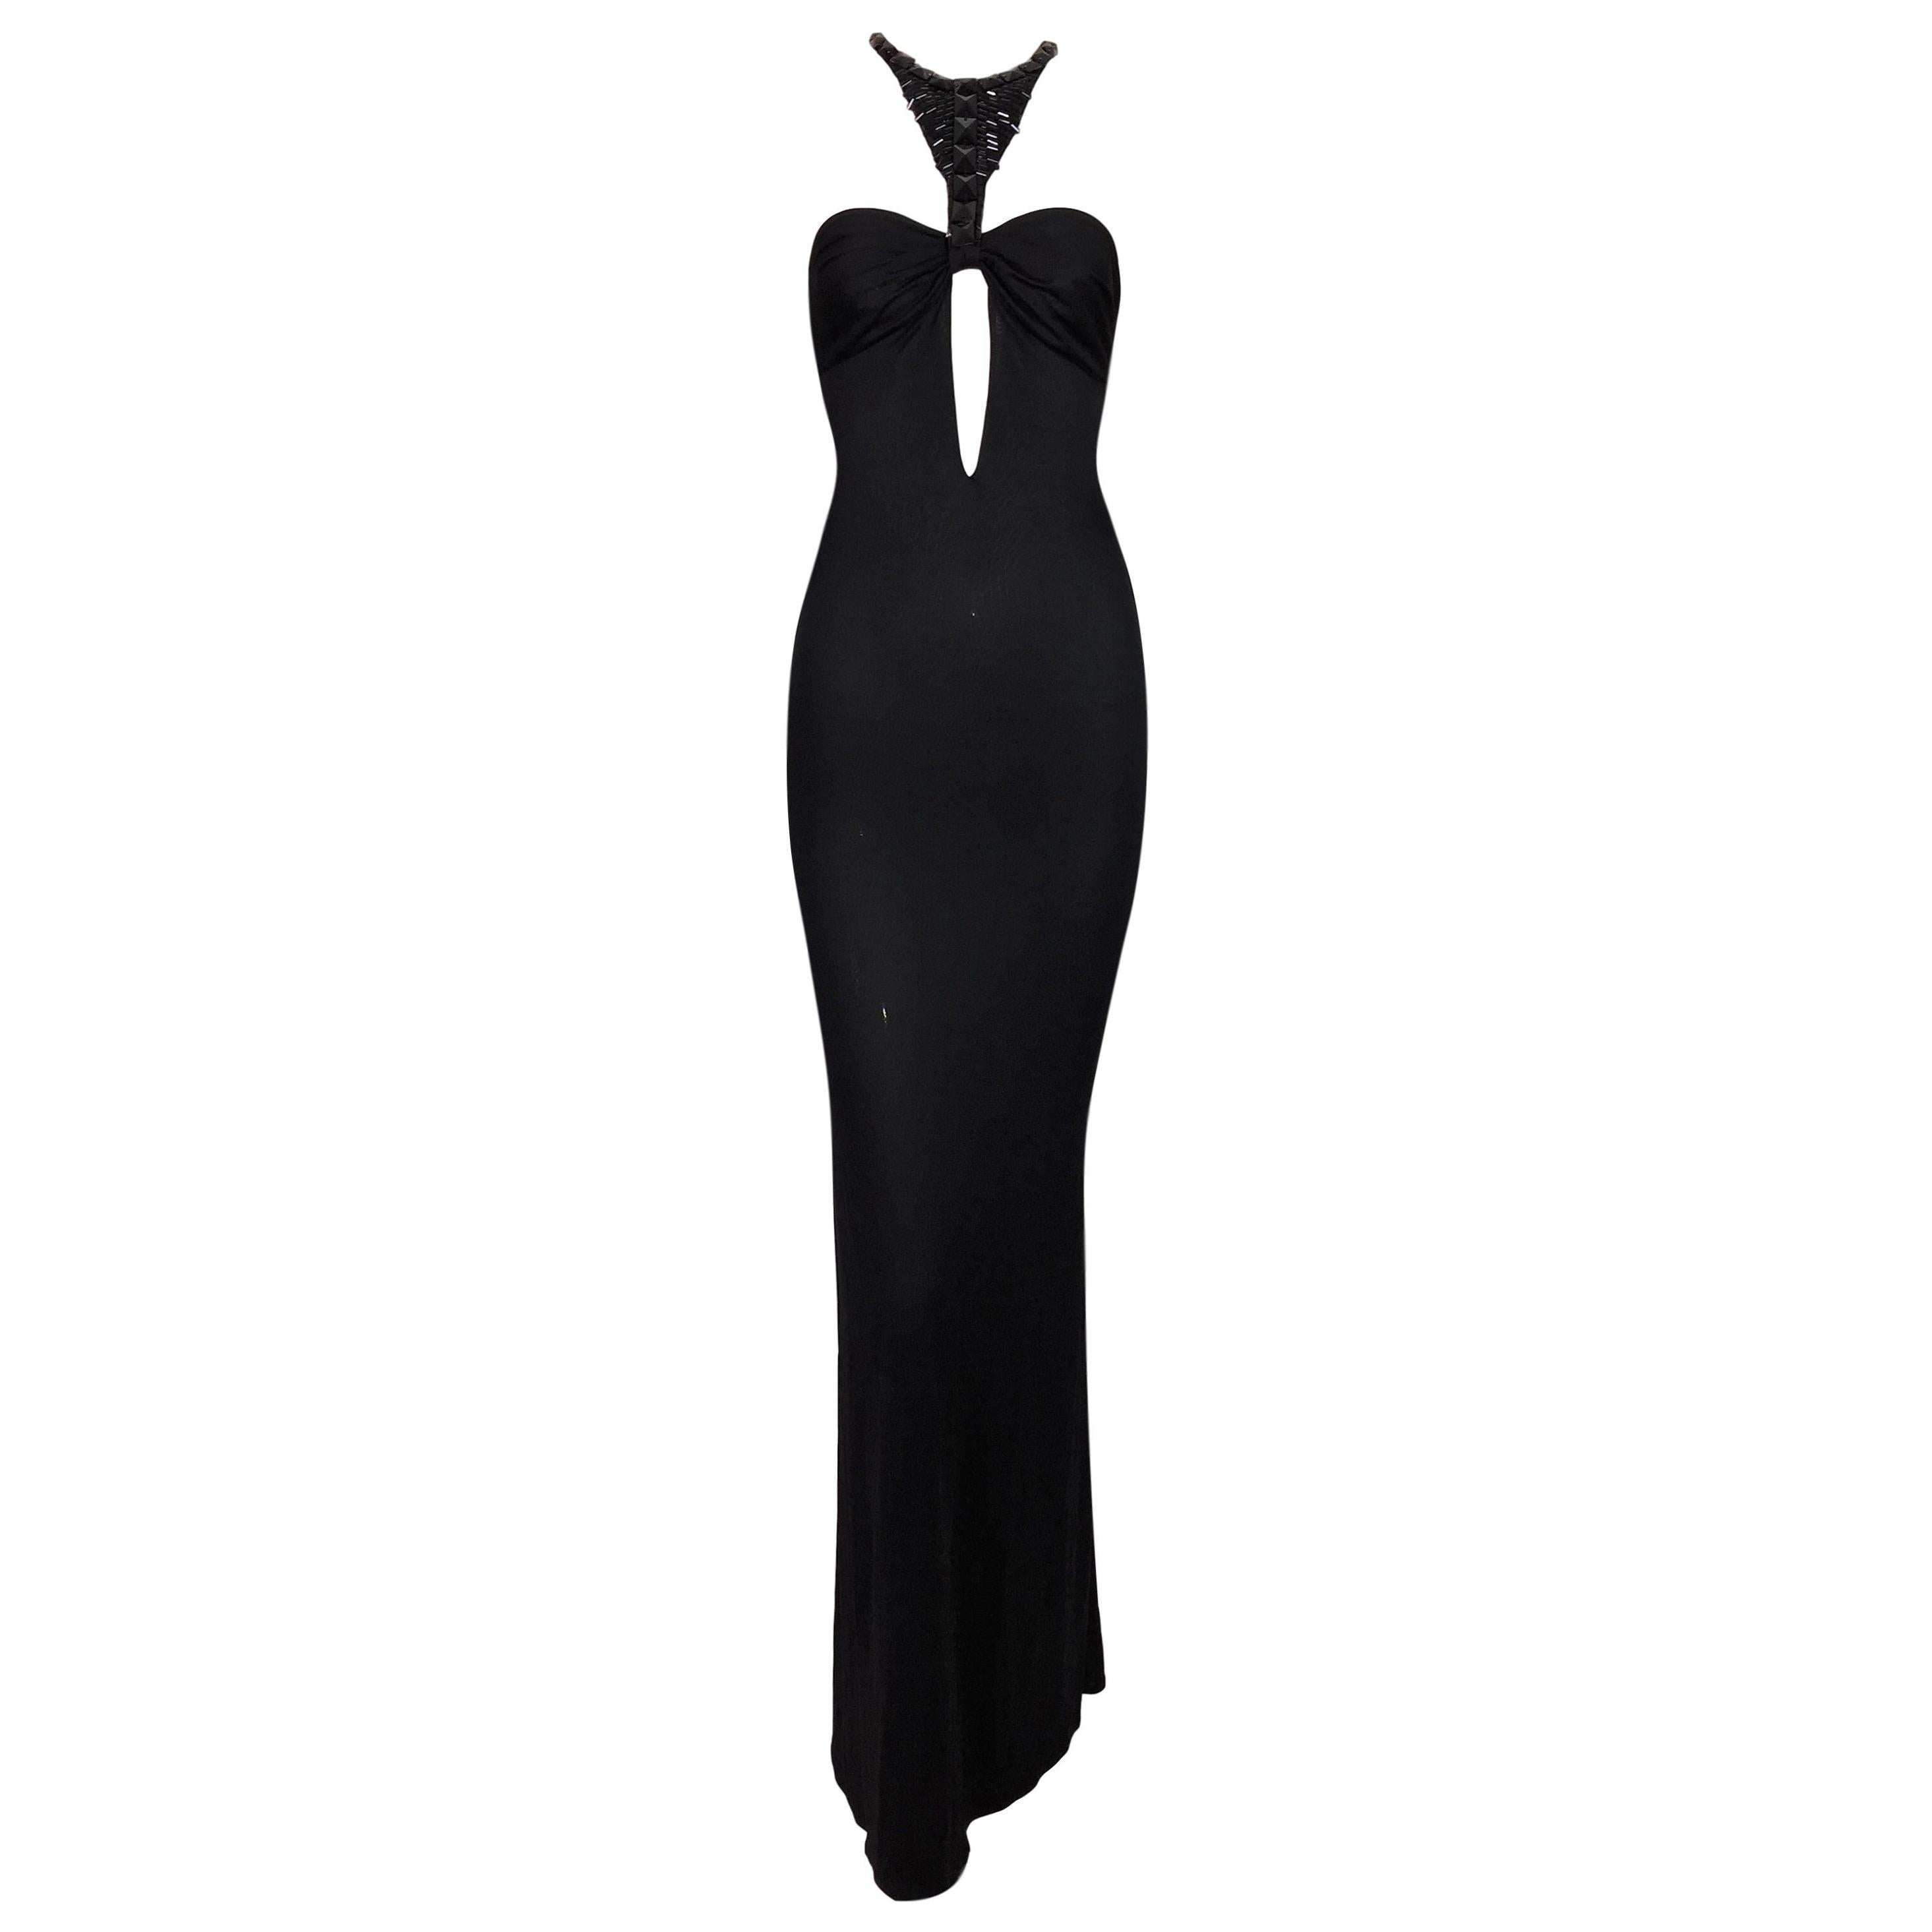 da3fc1abb Vintage Gucci Evening Dresses and Gowns - 343 For Sale at 1stdibs